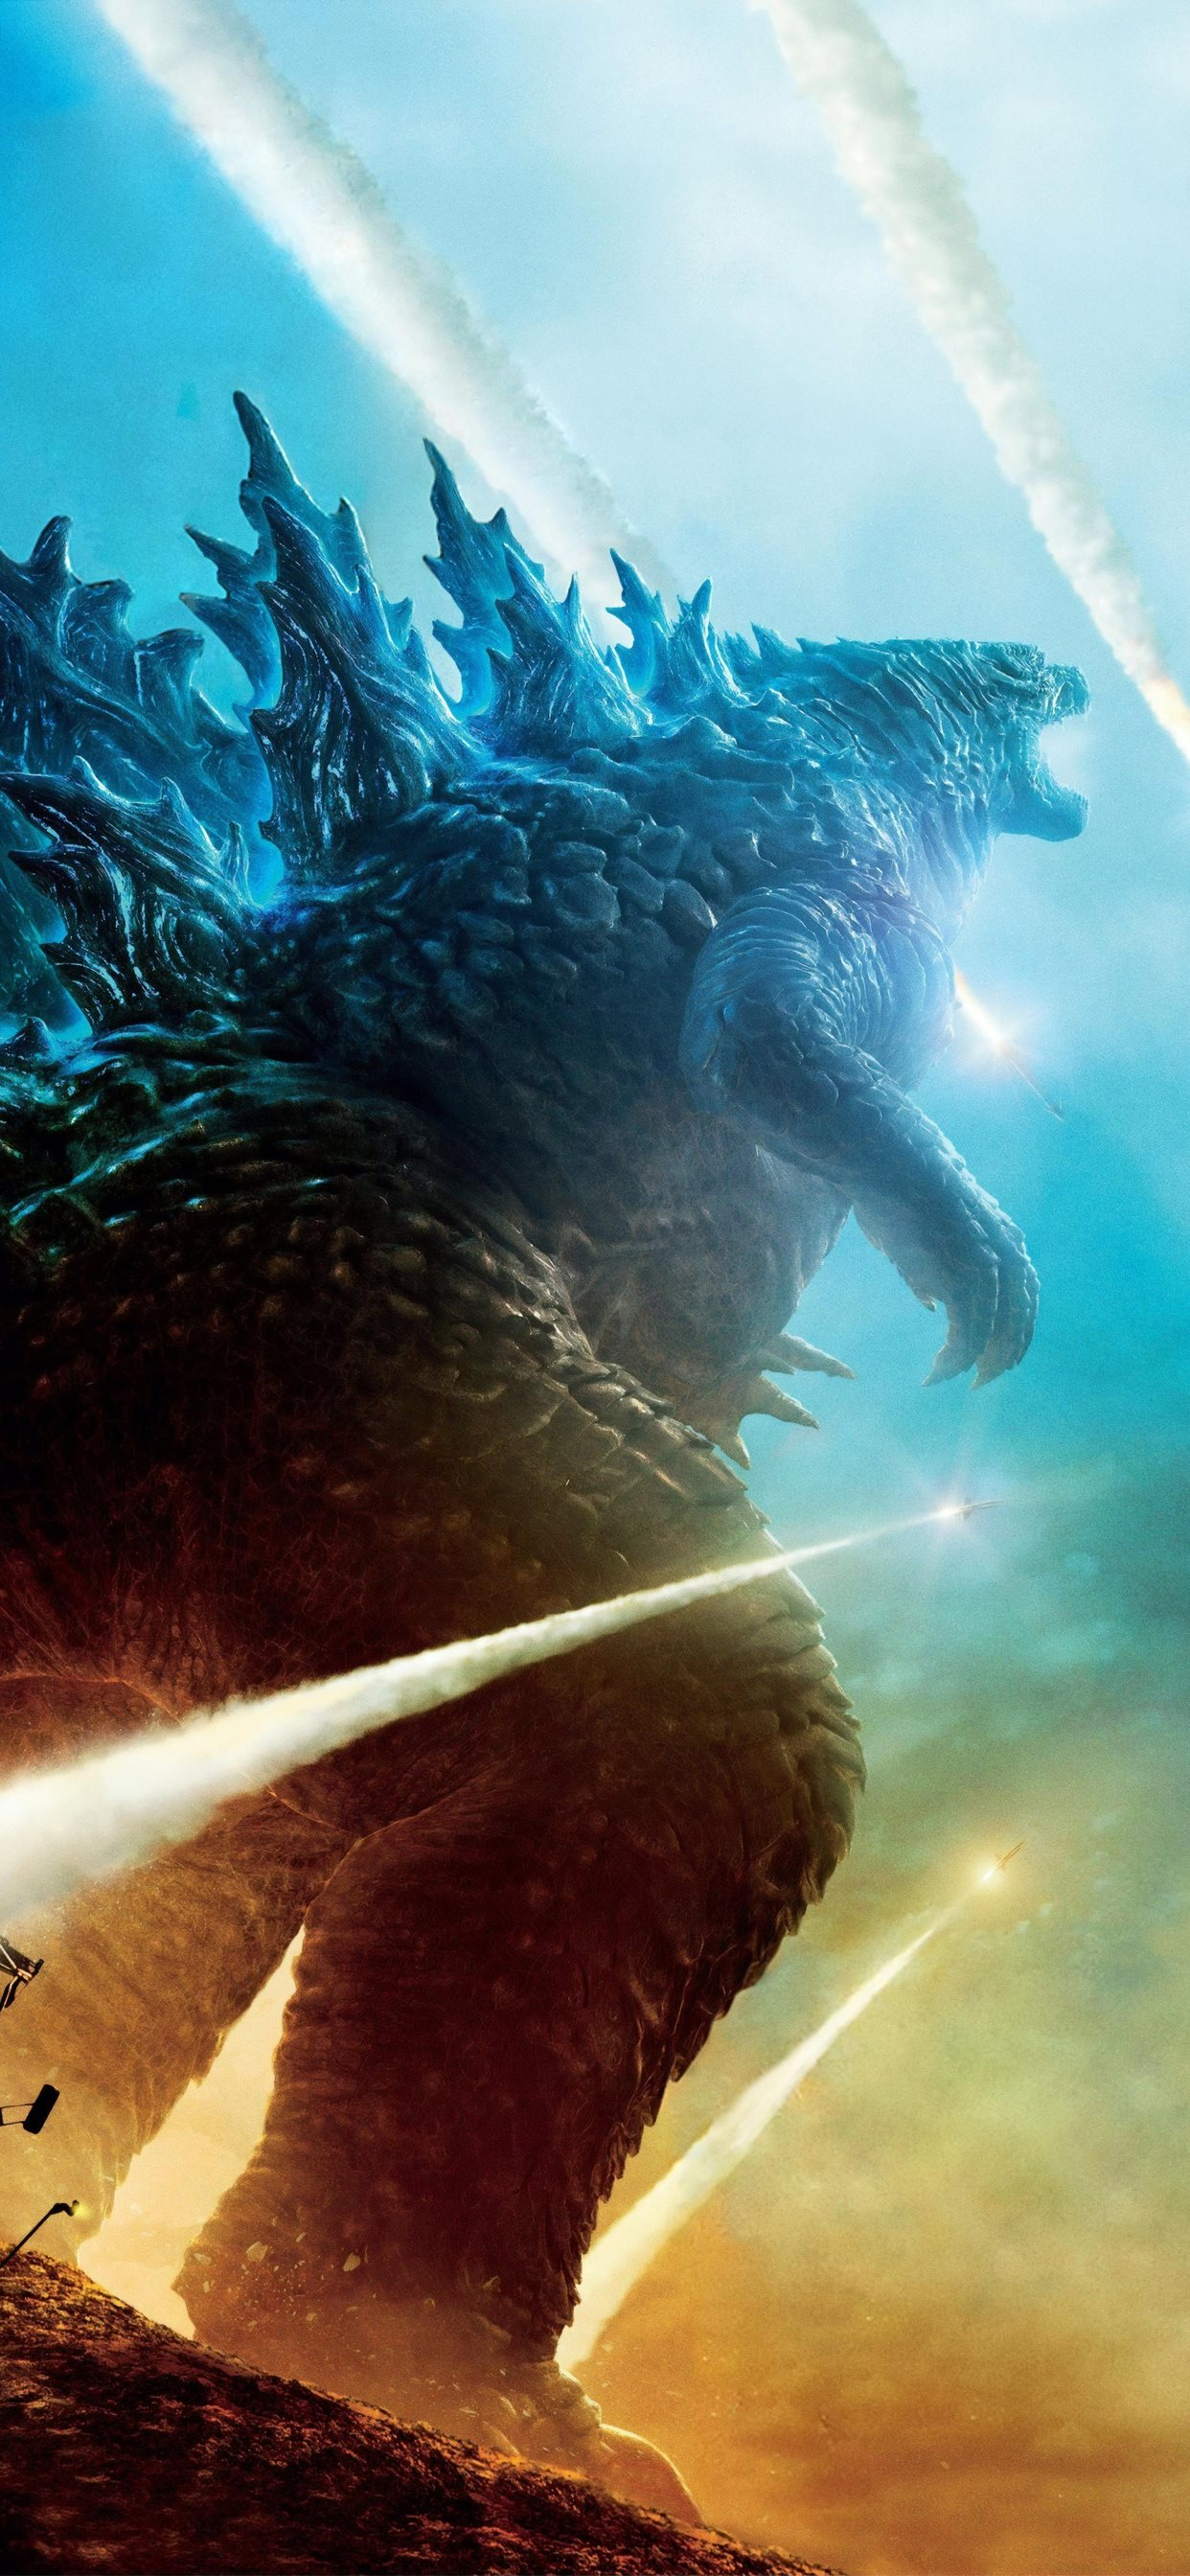 Godzilla King Of The Monsters Movie 4k Iphone X Wallpapers Free